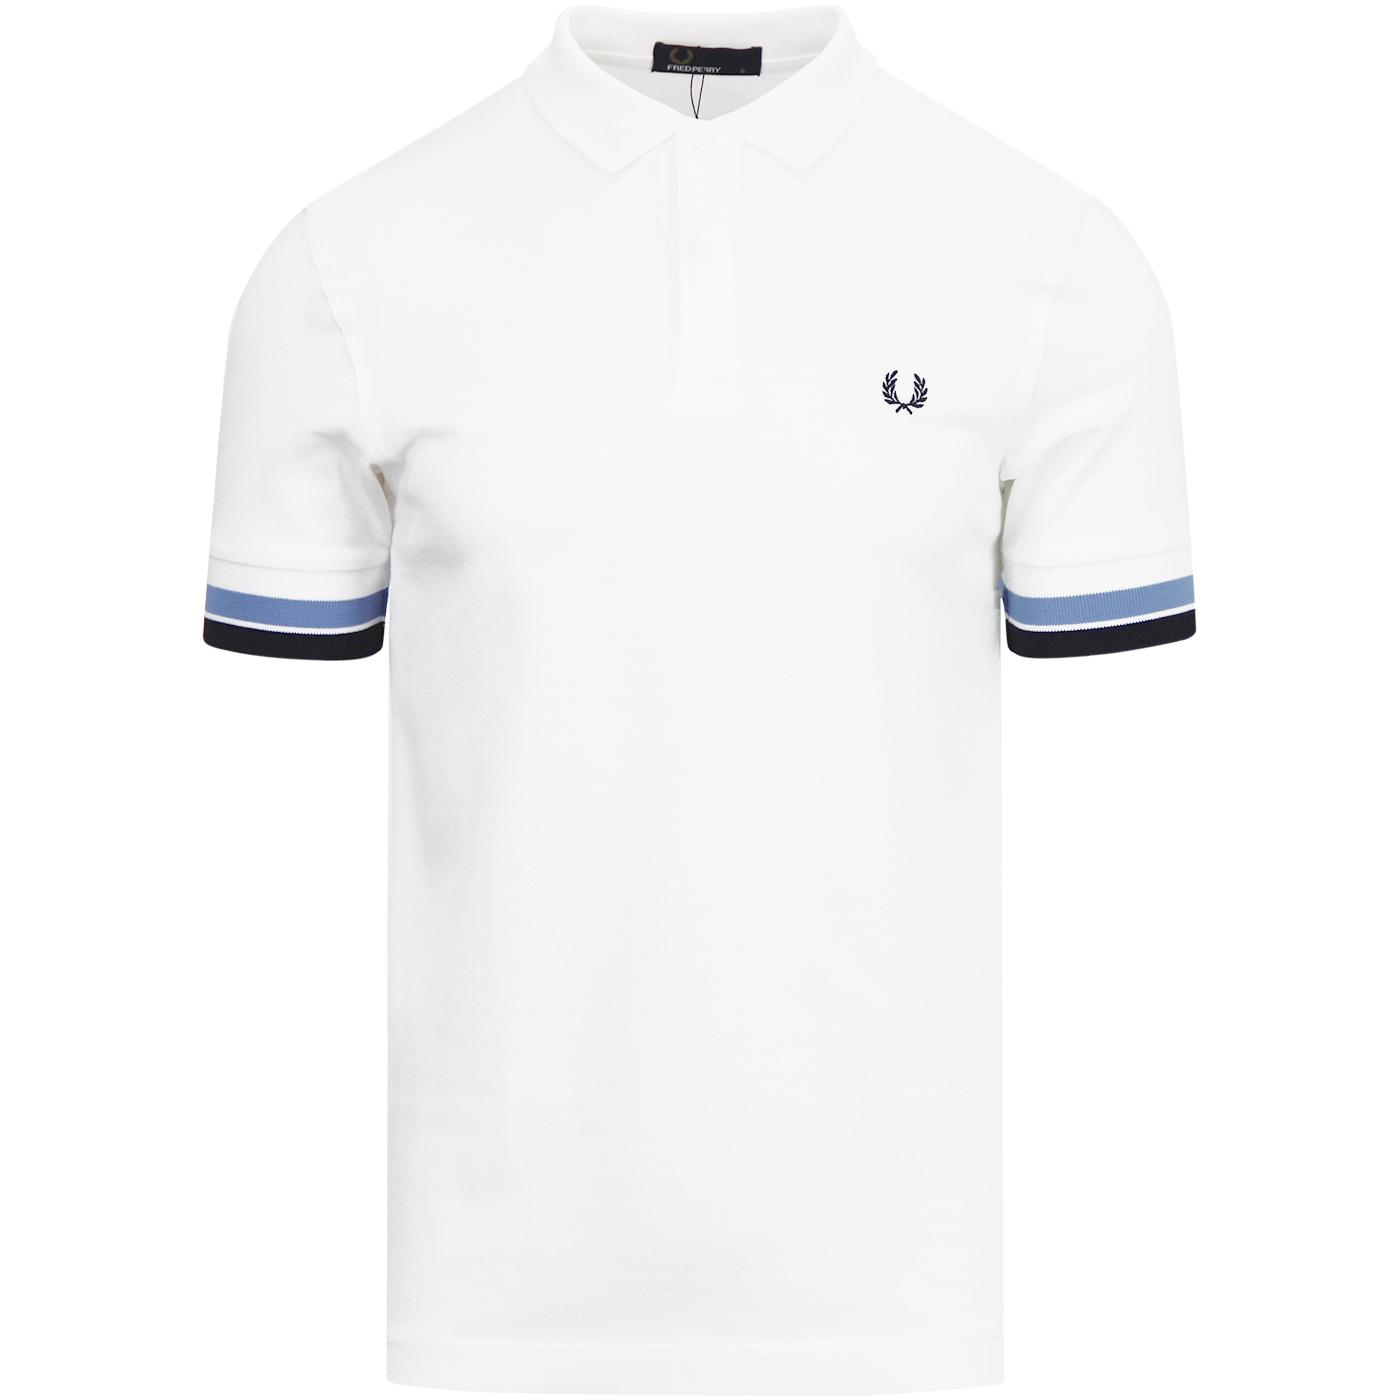 FRED PERRY Retro Mod Bold Cuff Stripe Polo Shirt